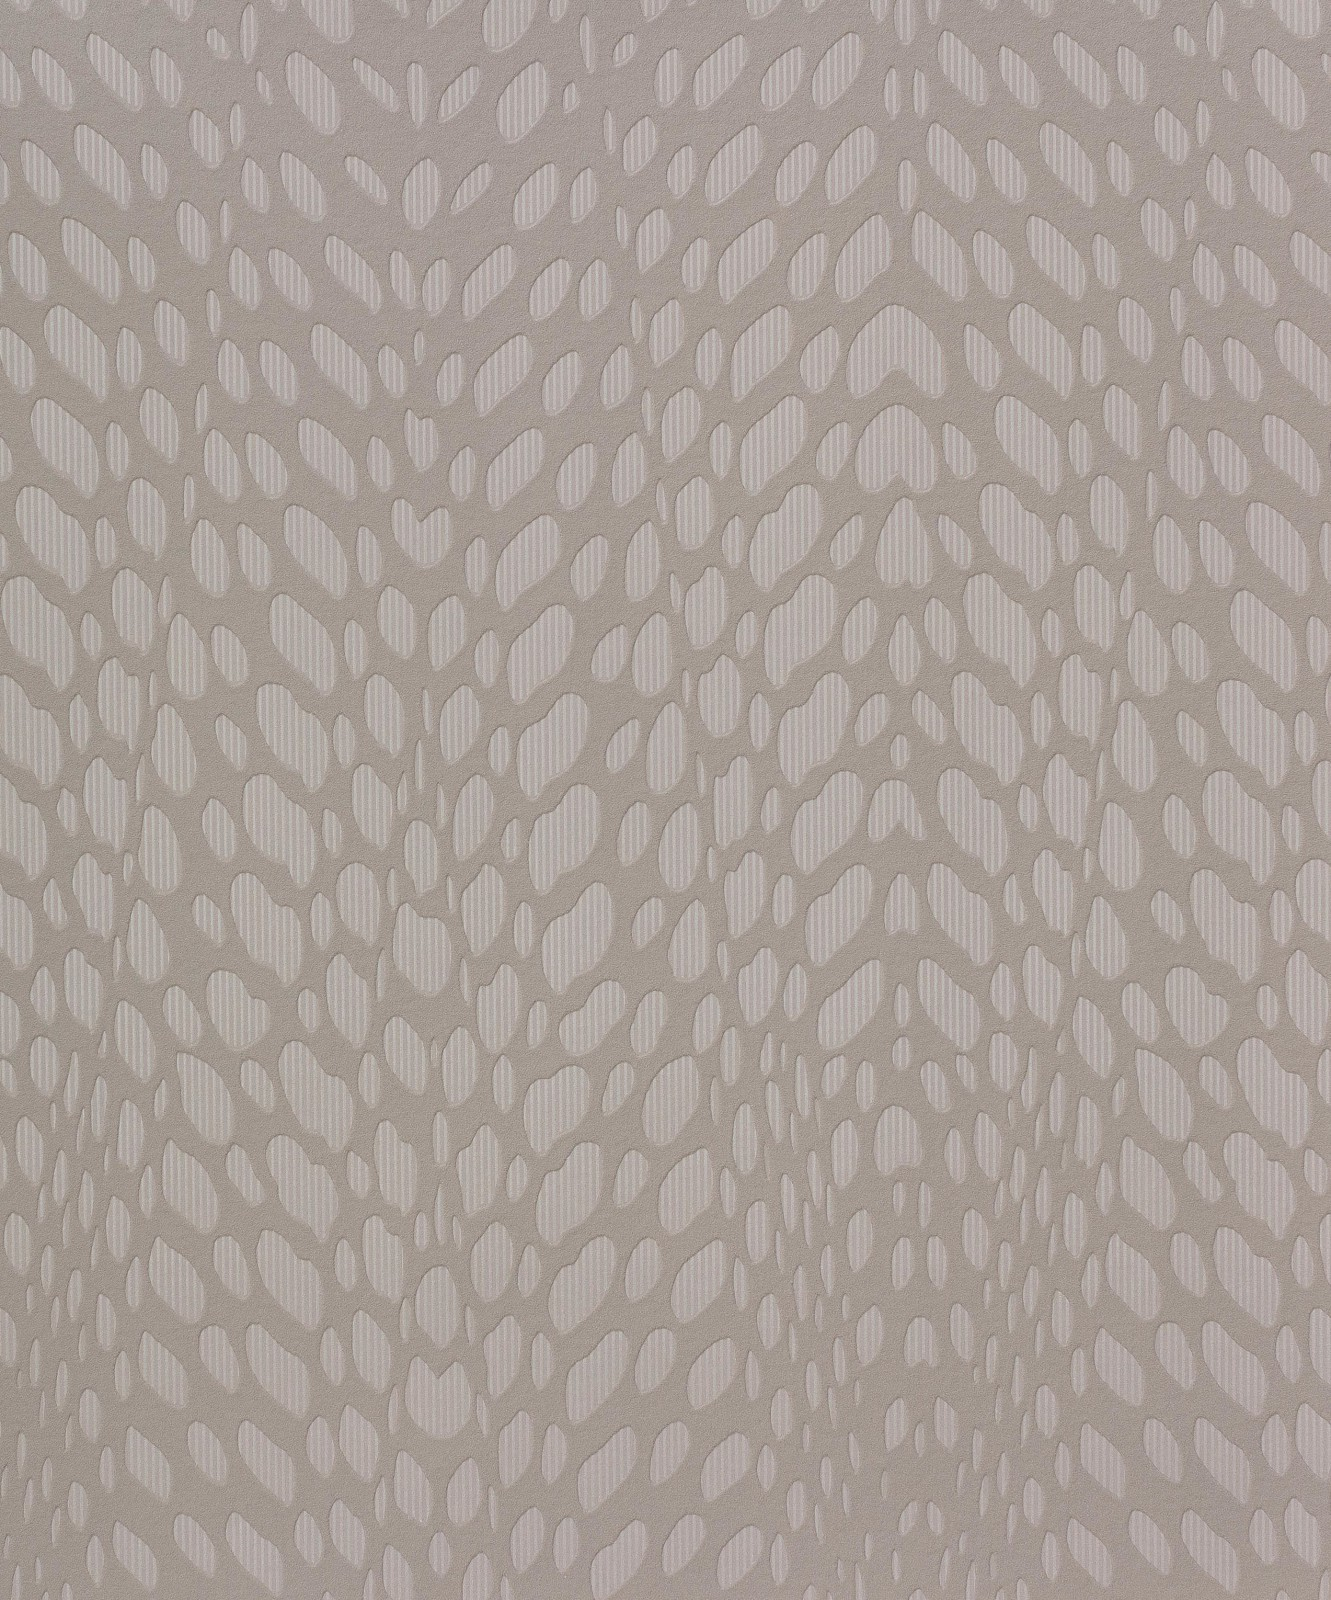 wallpaper rasch funky flair non woven wallpaper 721829 plain modern grey. Black Bedroom Furniture Sets. Home Design Ideas